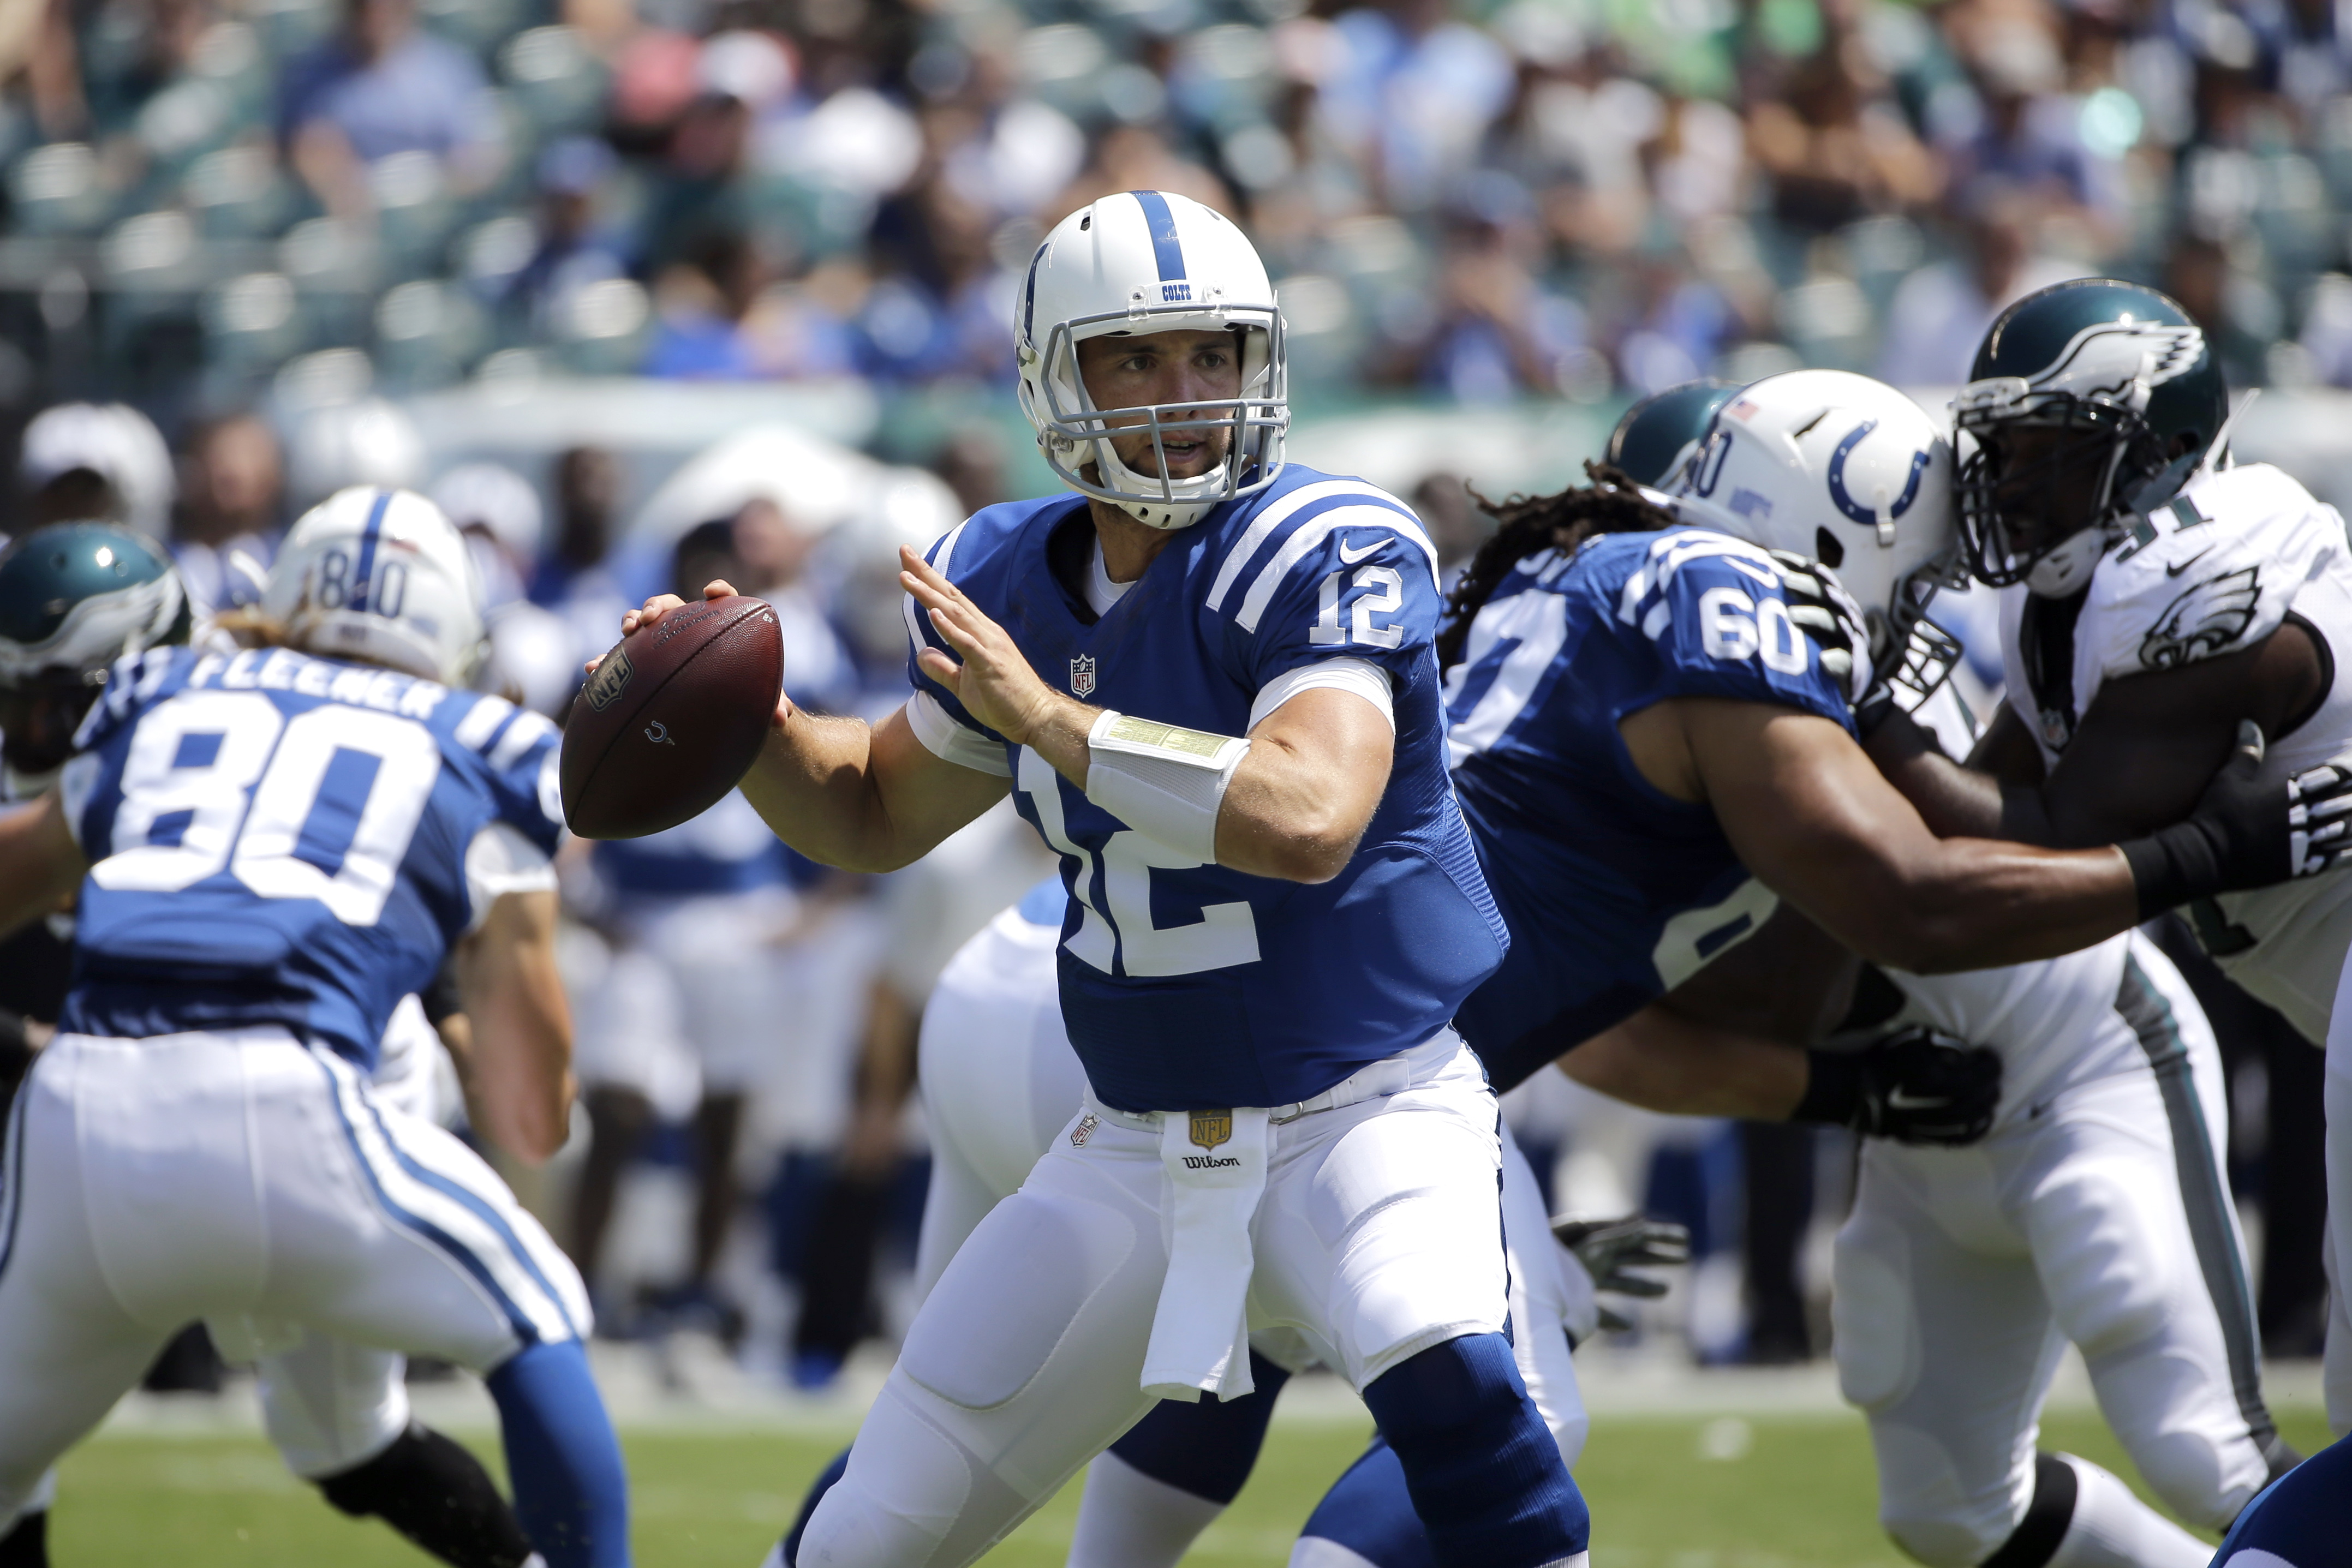 Indianapolis Colts' Andrew Luck looks to pass during the first half of a preseason NFL football game against the Philadelphia Eagles, Sunday, Aug. 16, 2015, in Philadelphia. (AP Photo/Michael Perez)